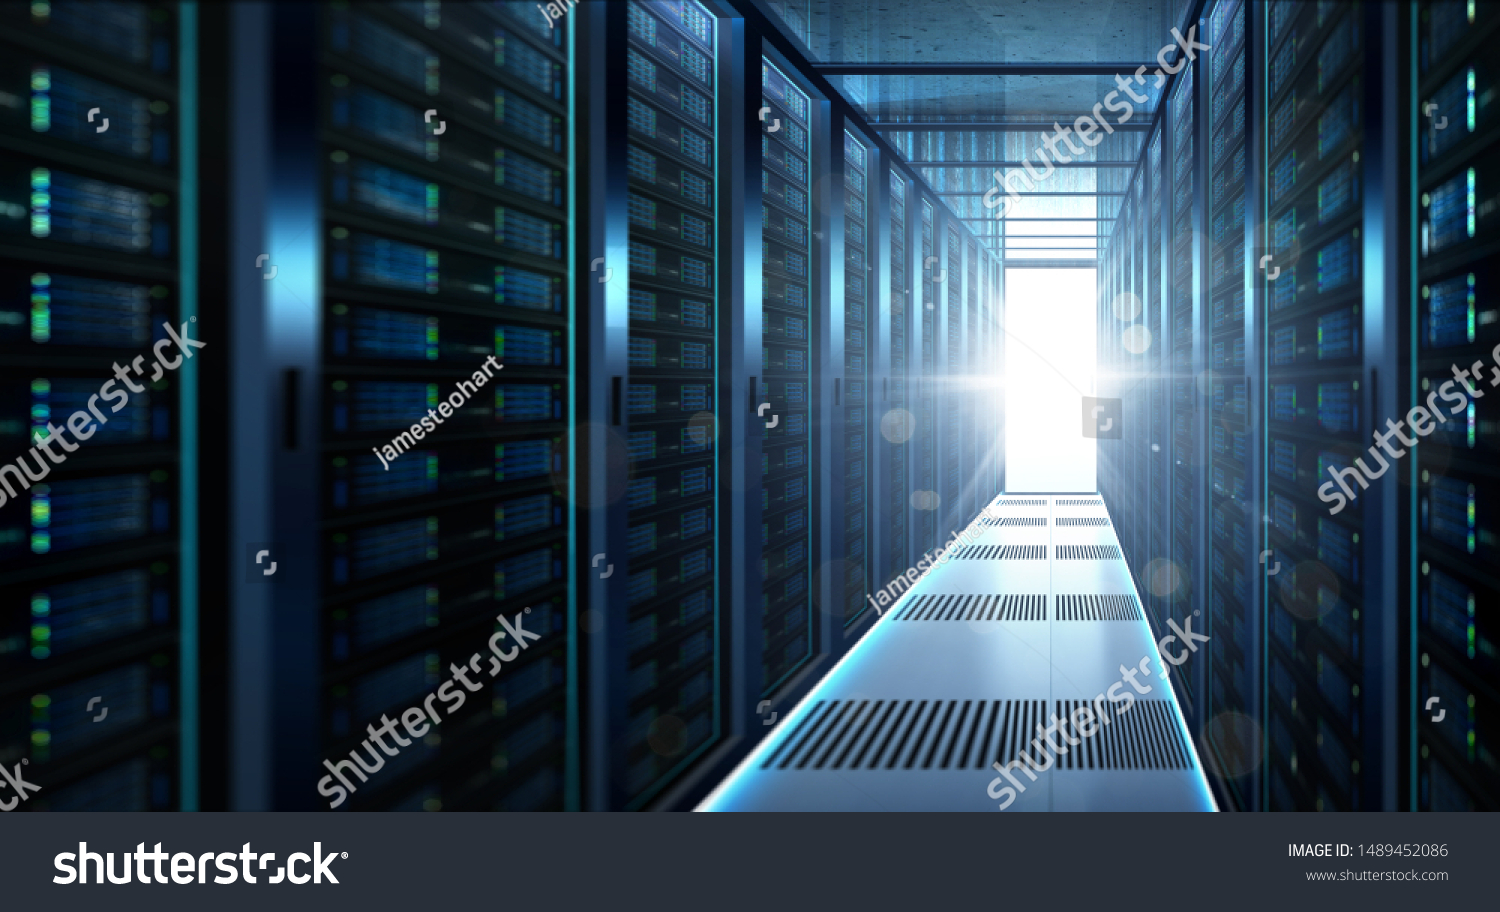 Big data center storage with full of rack servers and light flare effect  .Cloud server room 3D rendering . #1489452086